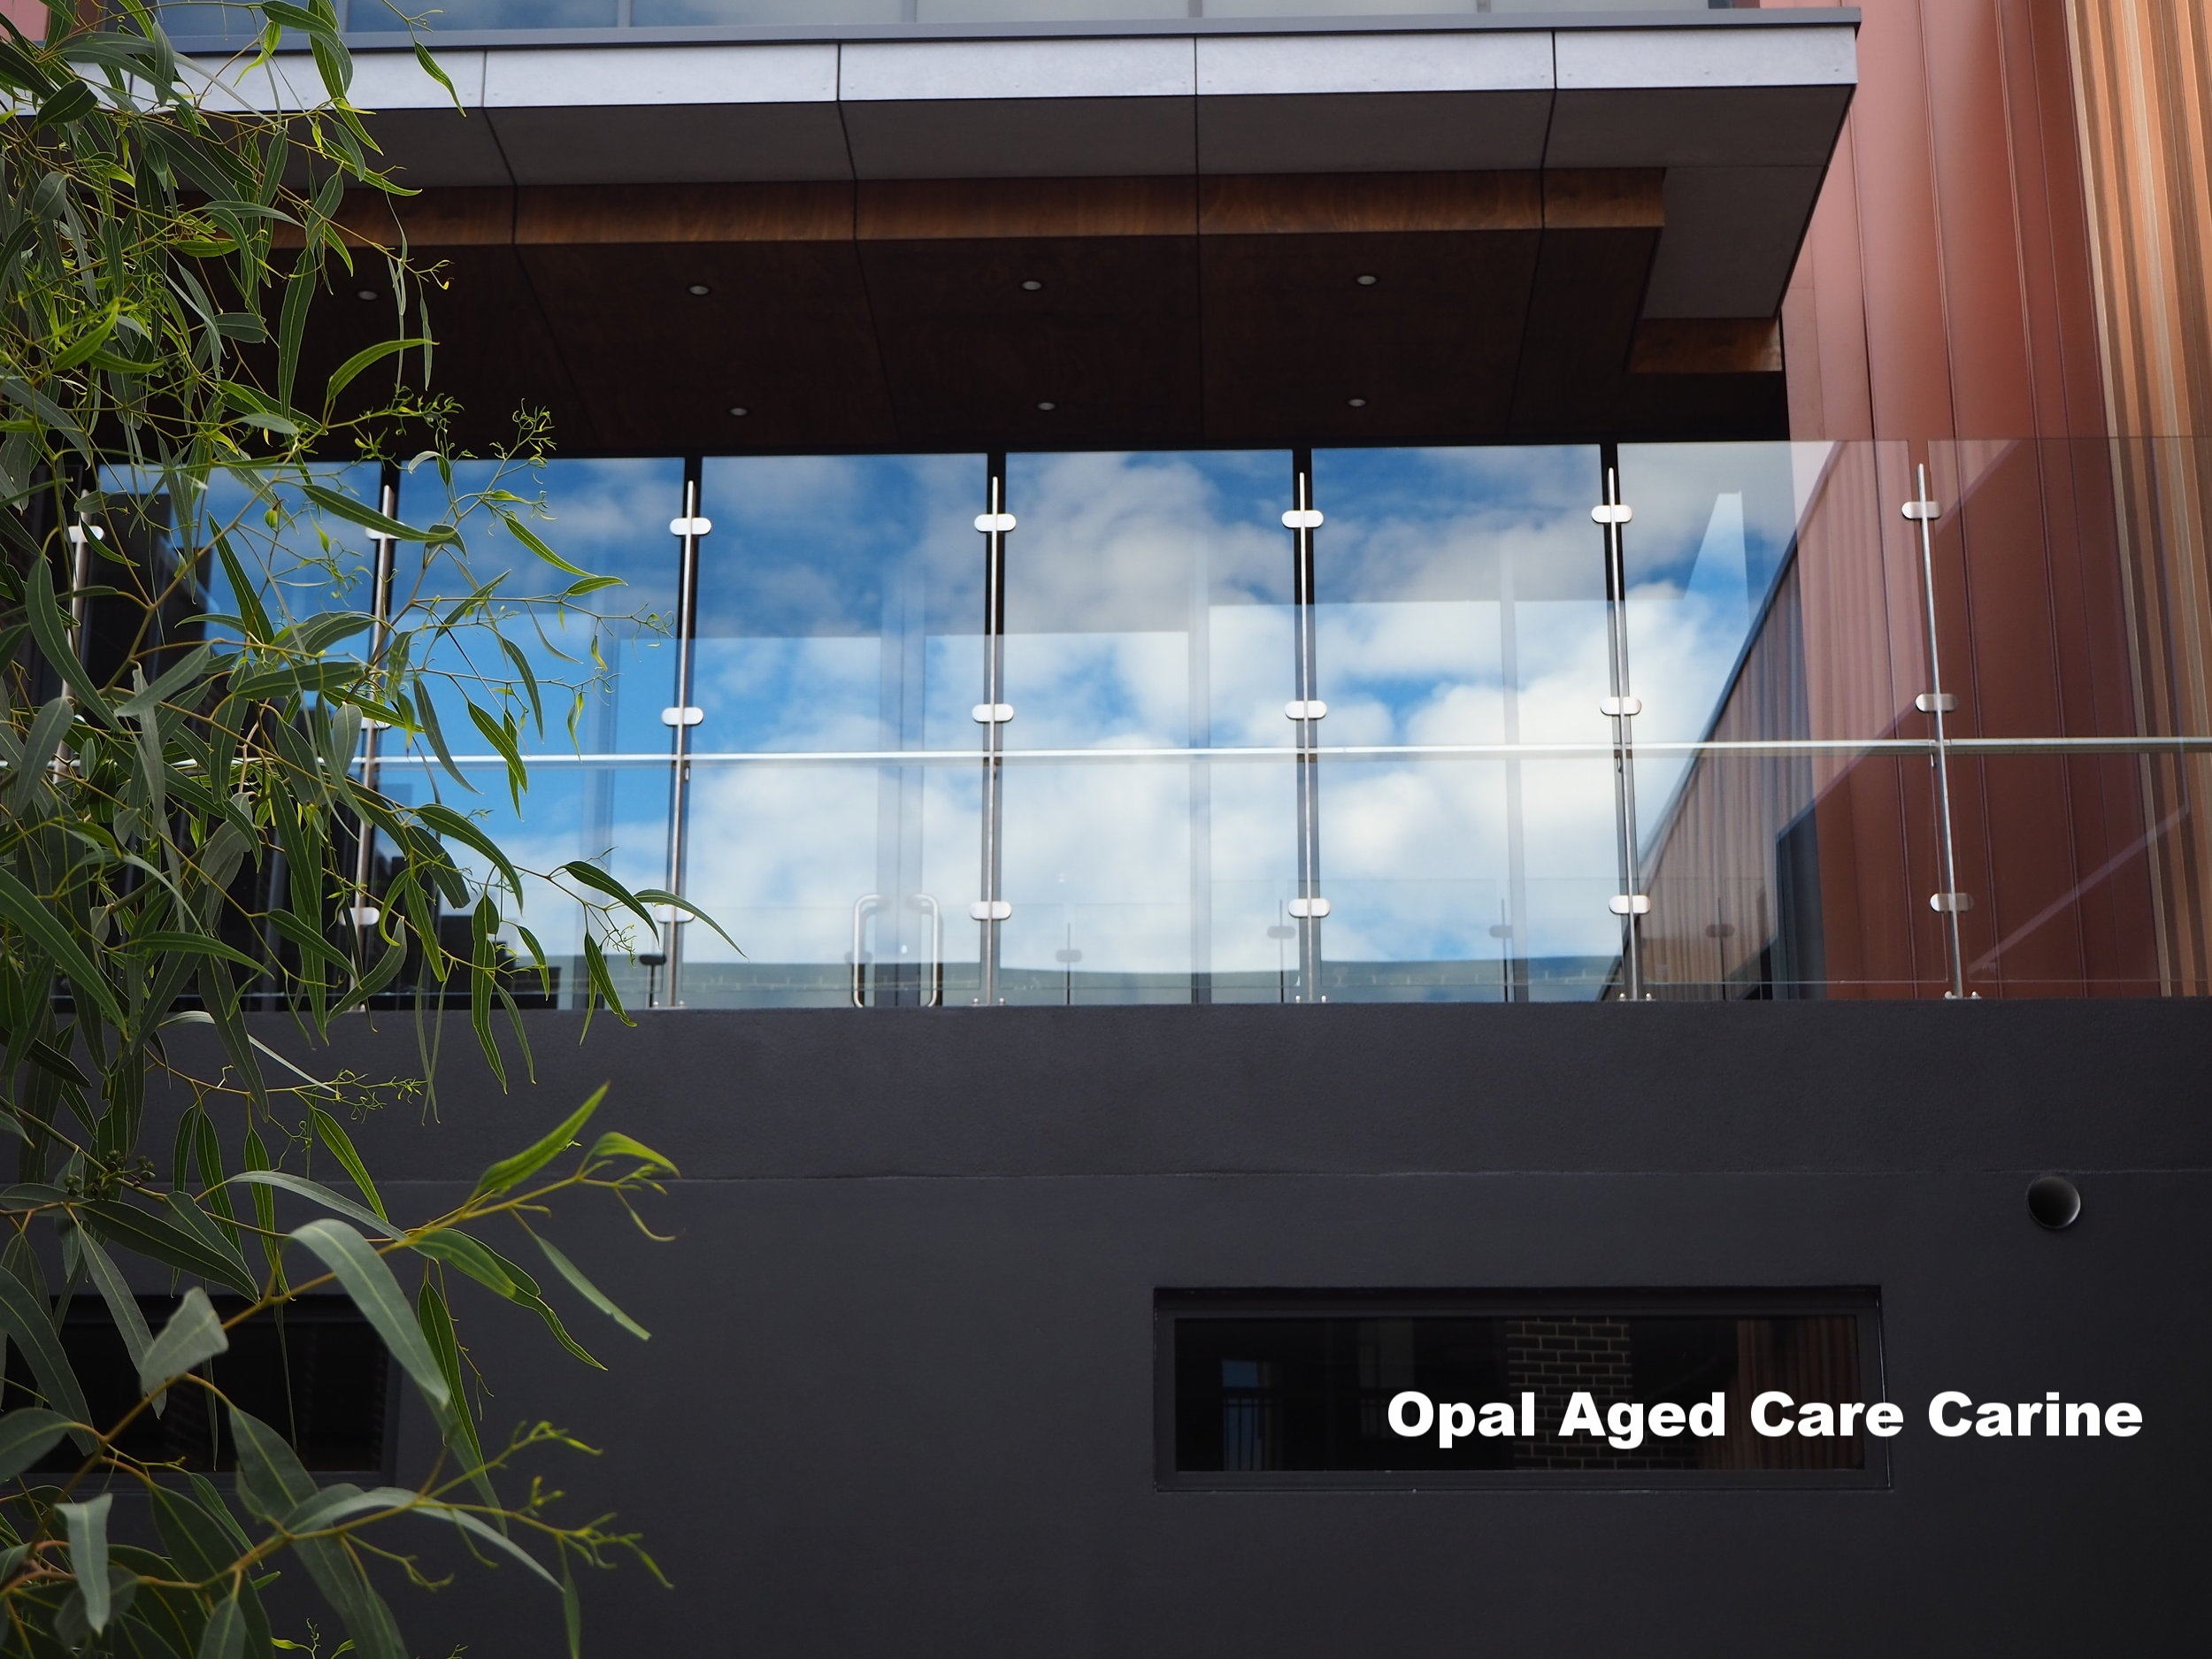 opal aged care carine stainless steel and galss balcony balustrade.JPG